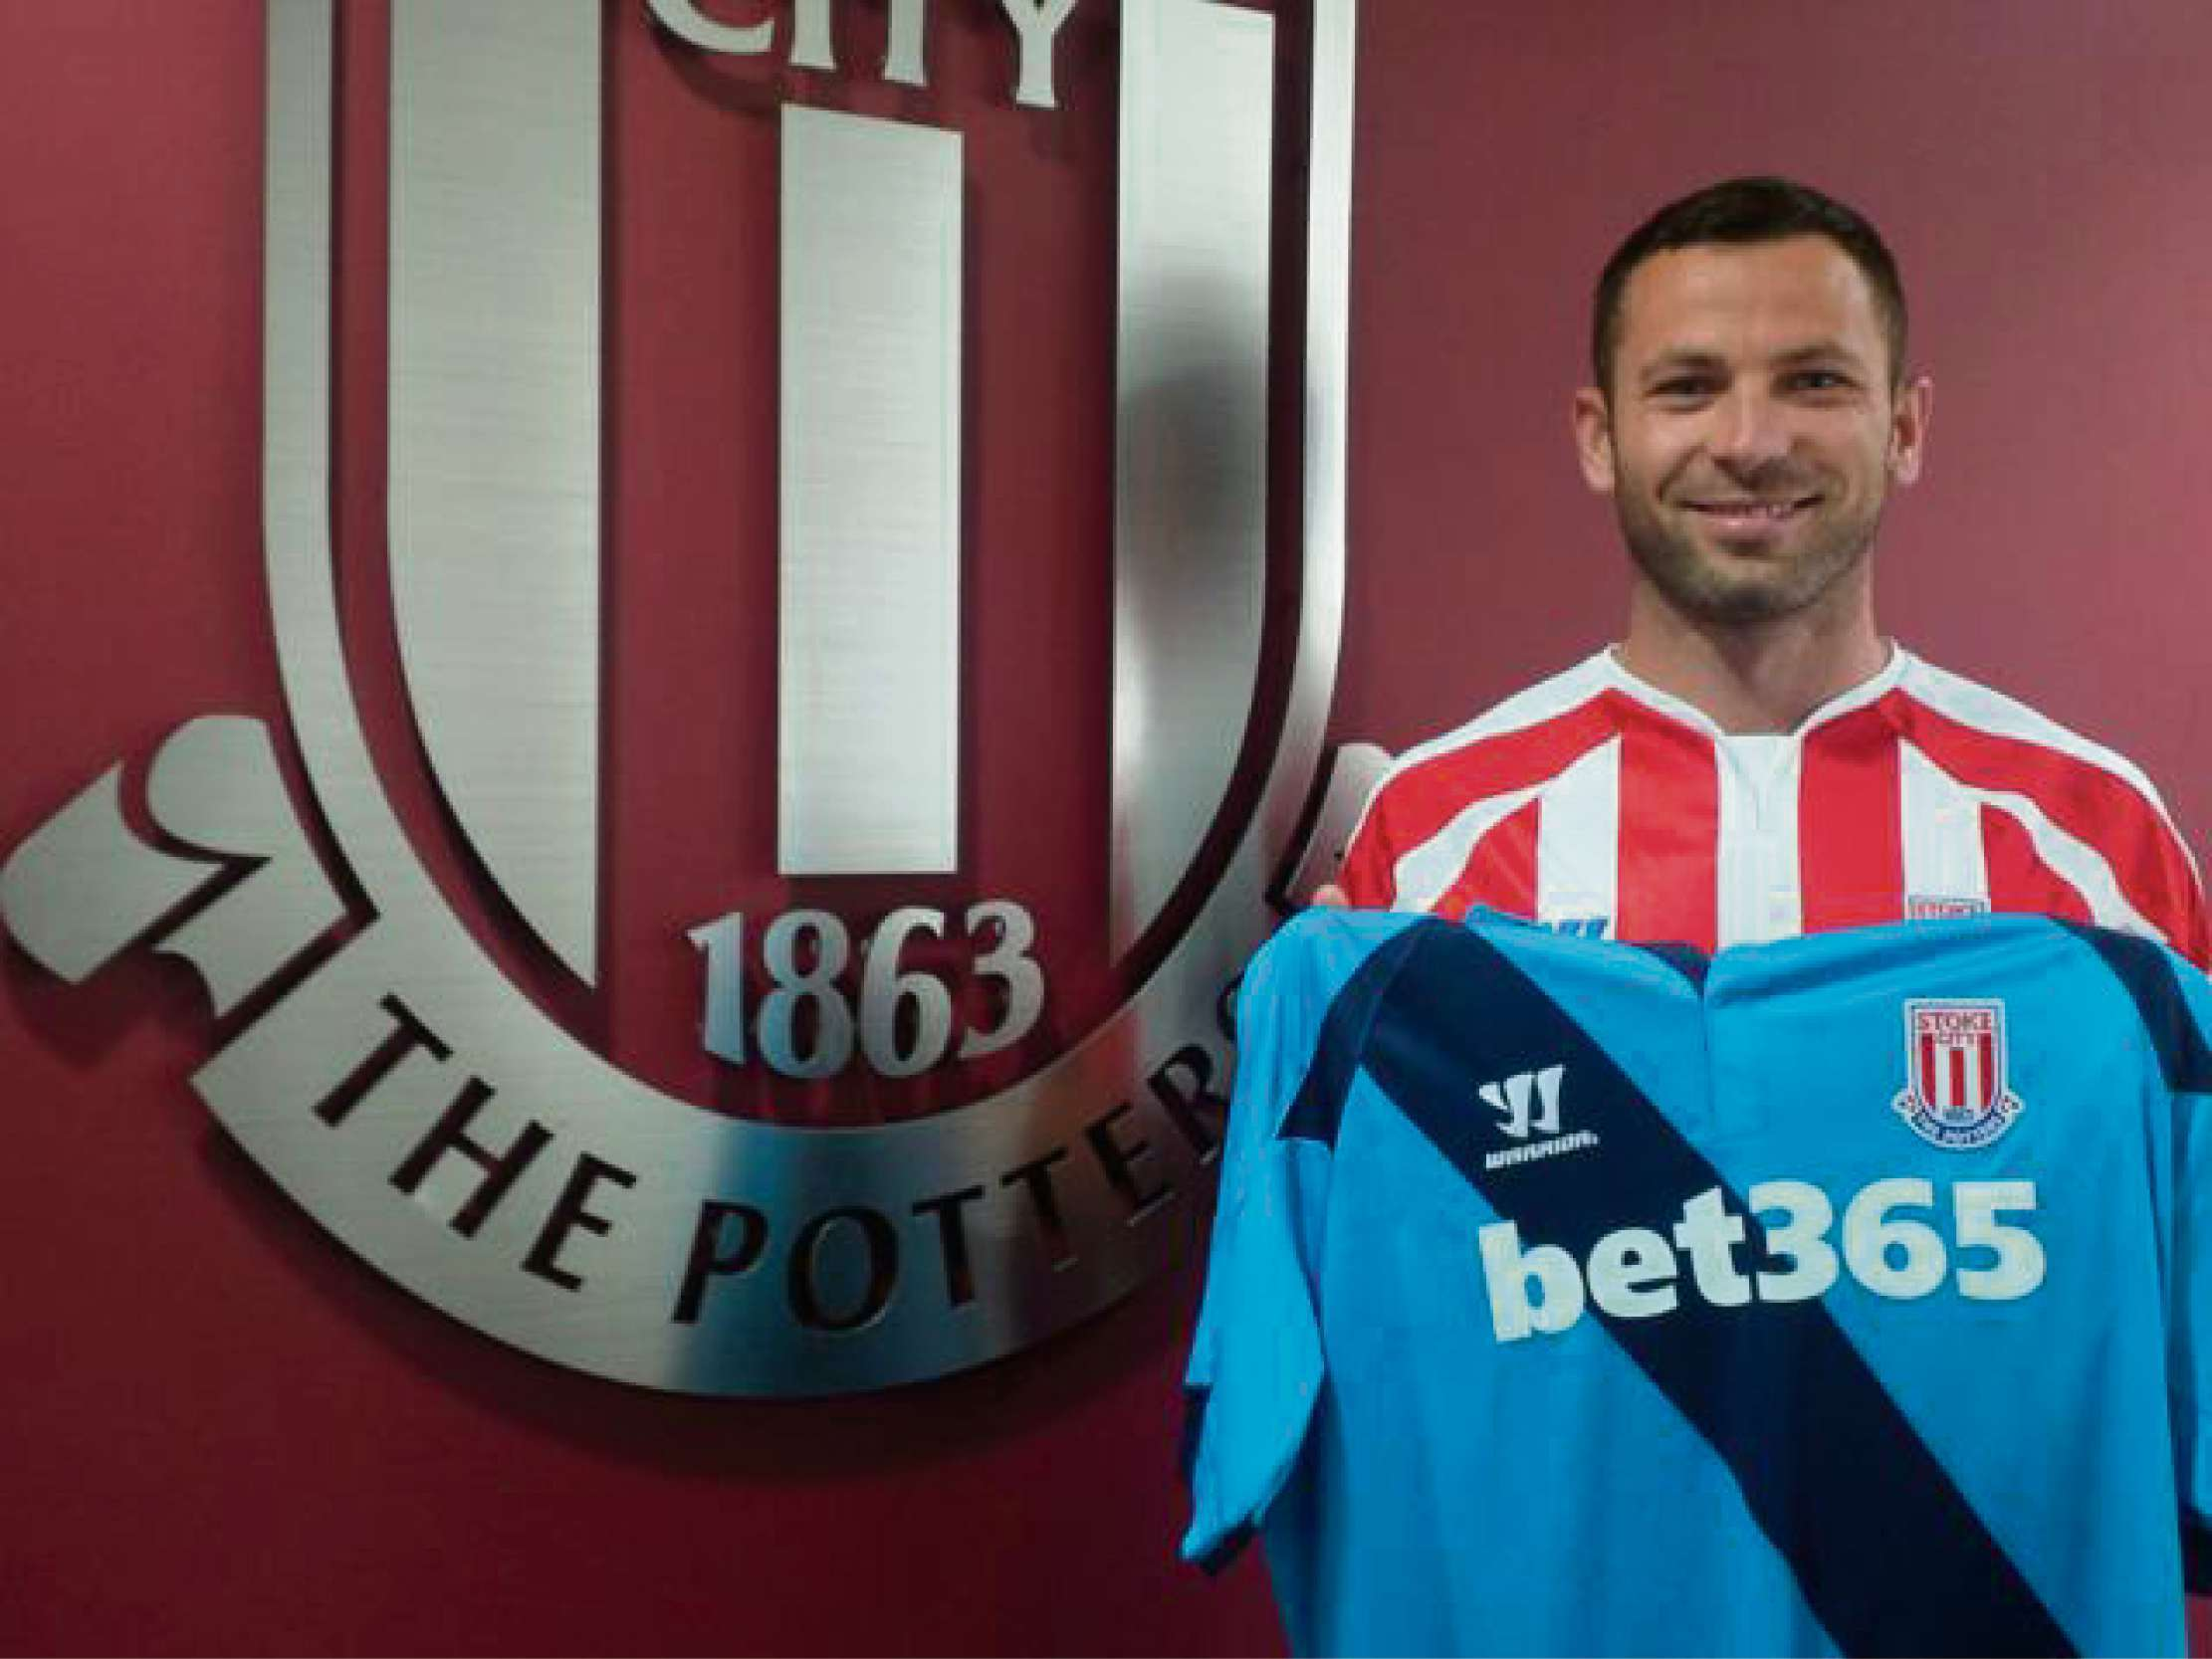 NEW BOY: Phil Bardsley holds the Stoke City shirt aloft after signing for the Potters from Sunderland yesterday